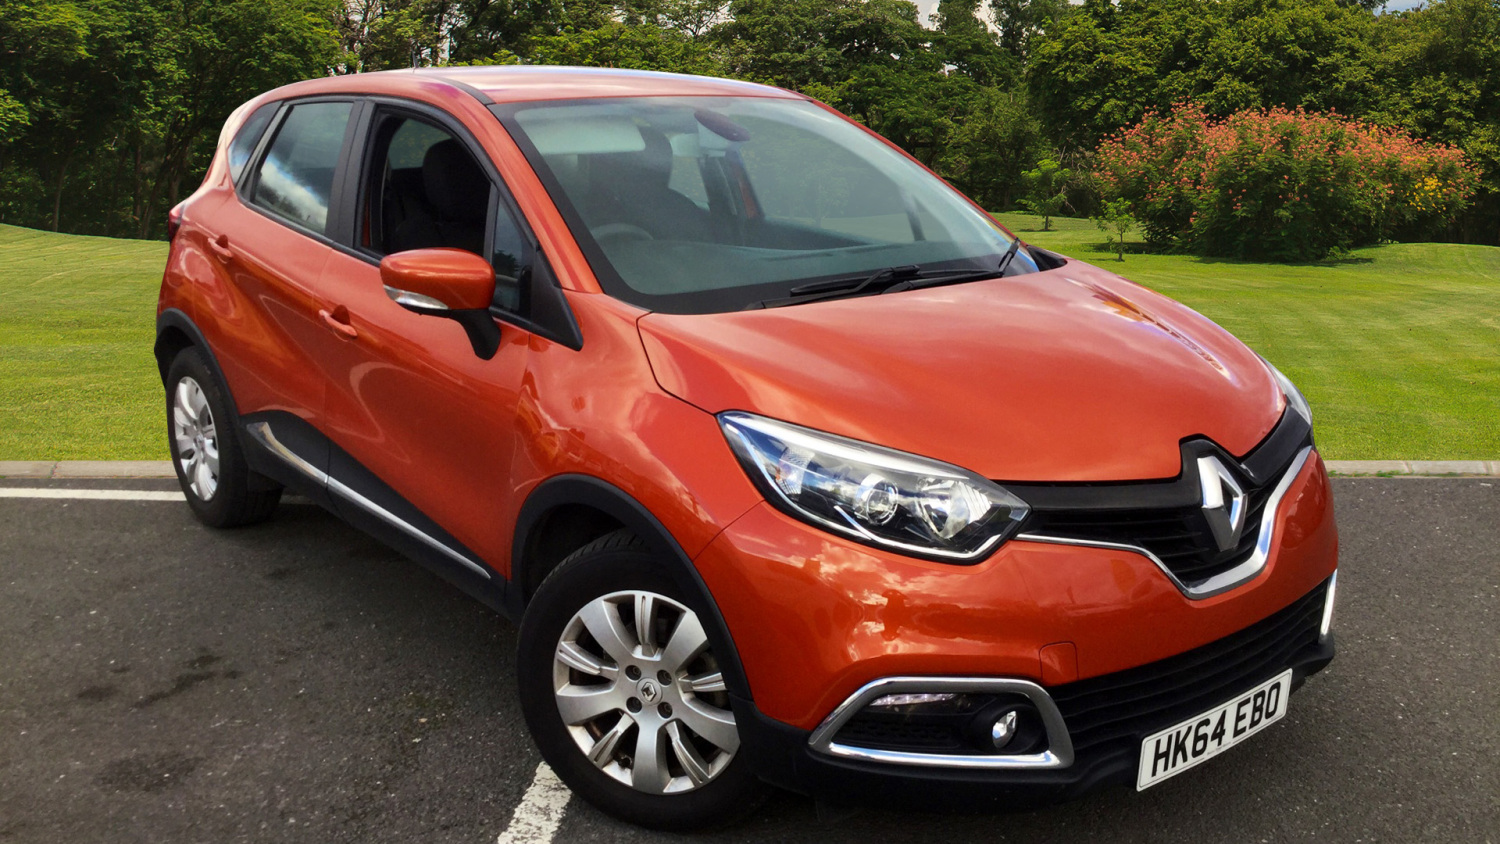 used renault captur 1 5 dci 90 expression energy 5dr diesel hatchback for sale vertu volkswagen. Black Bedroom Furniture Sets. Home Design Ideas